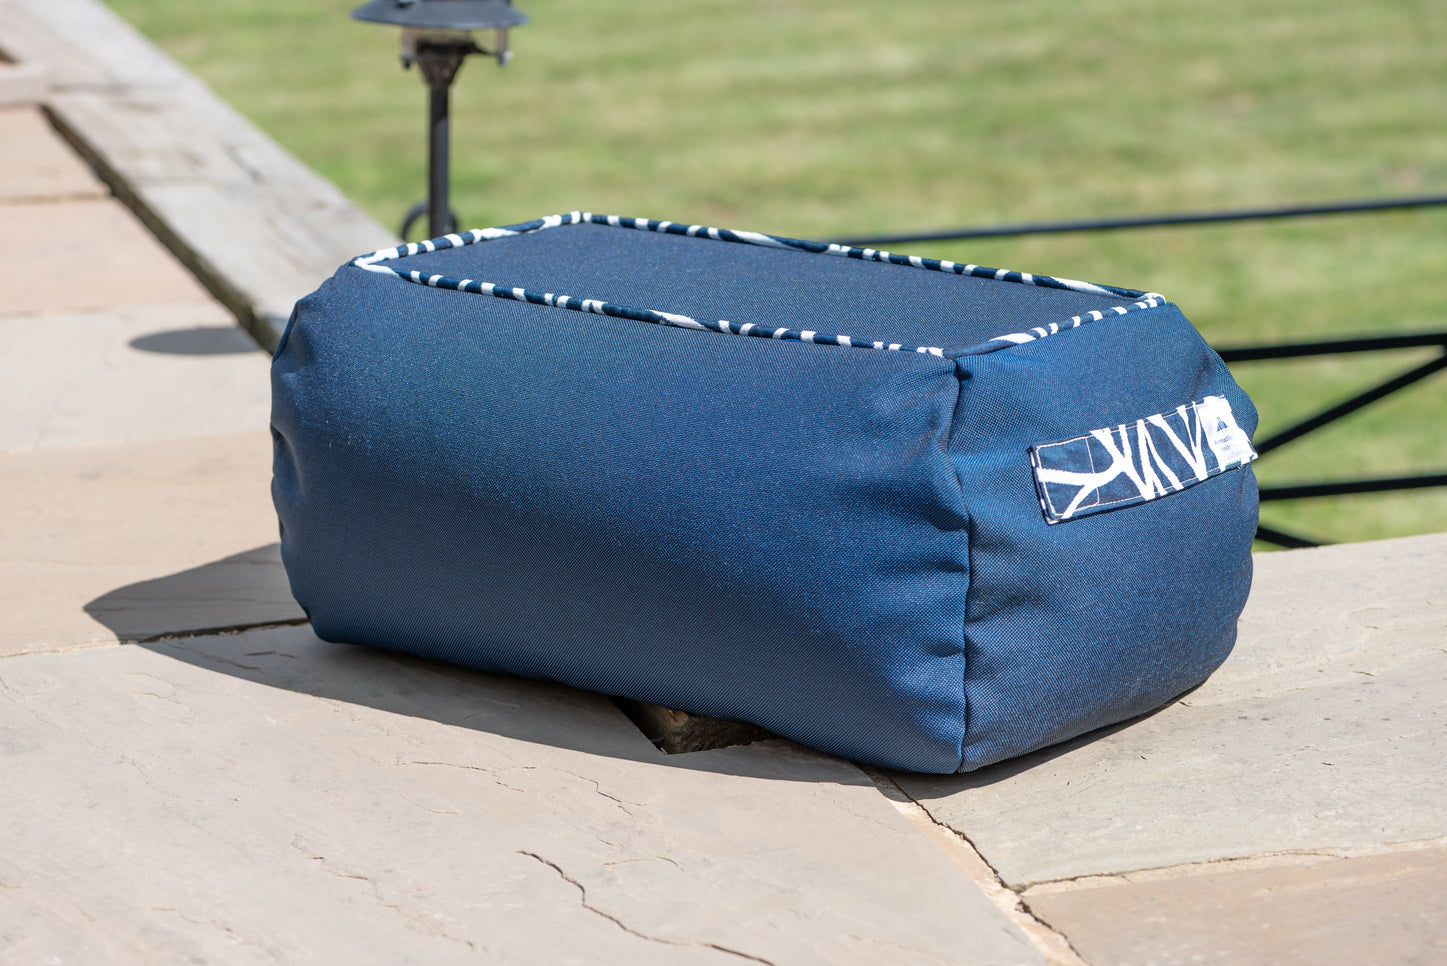 Bean Bag Table in Navy Blue Bean Bag Table armadillosun